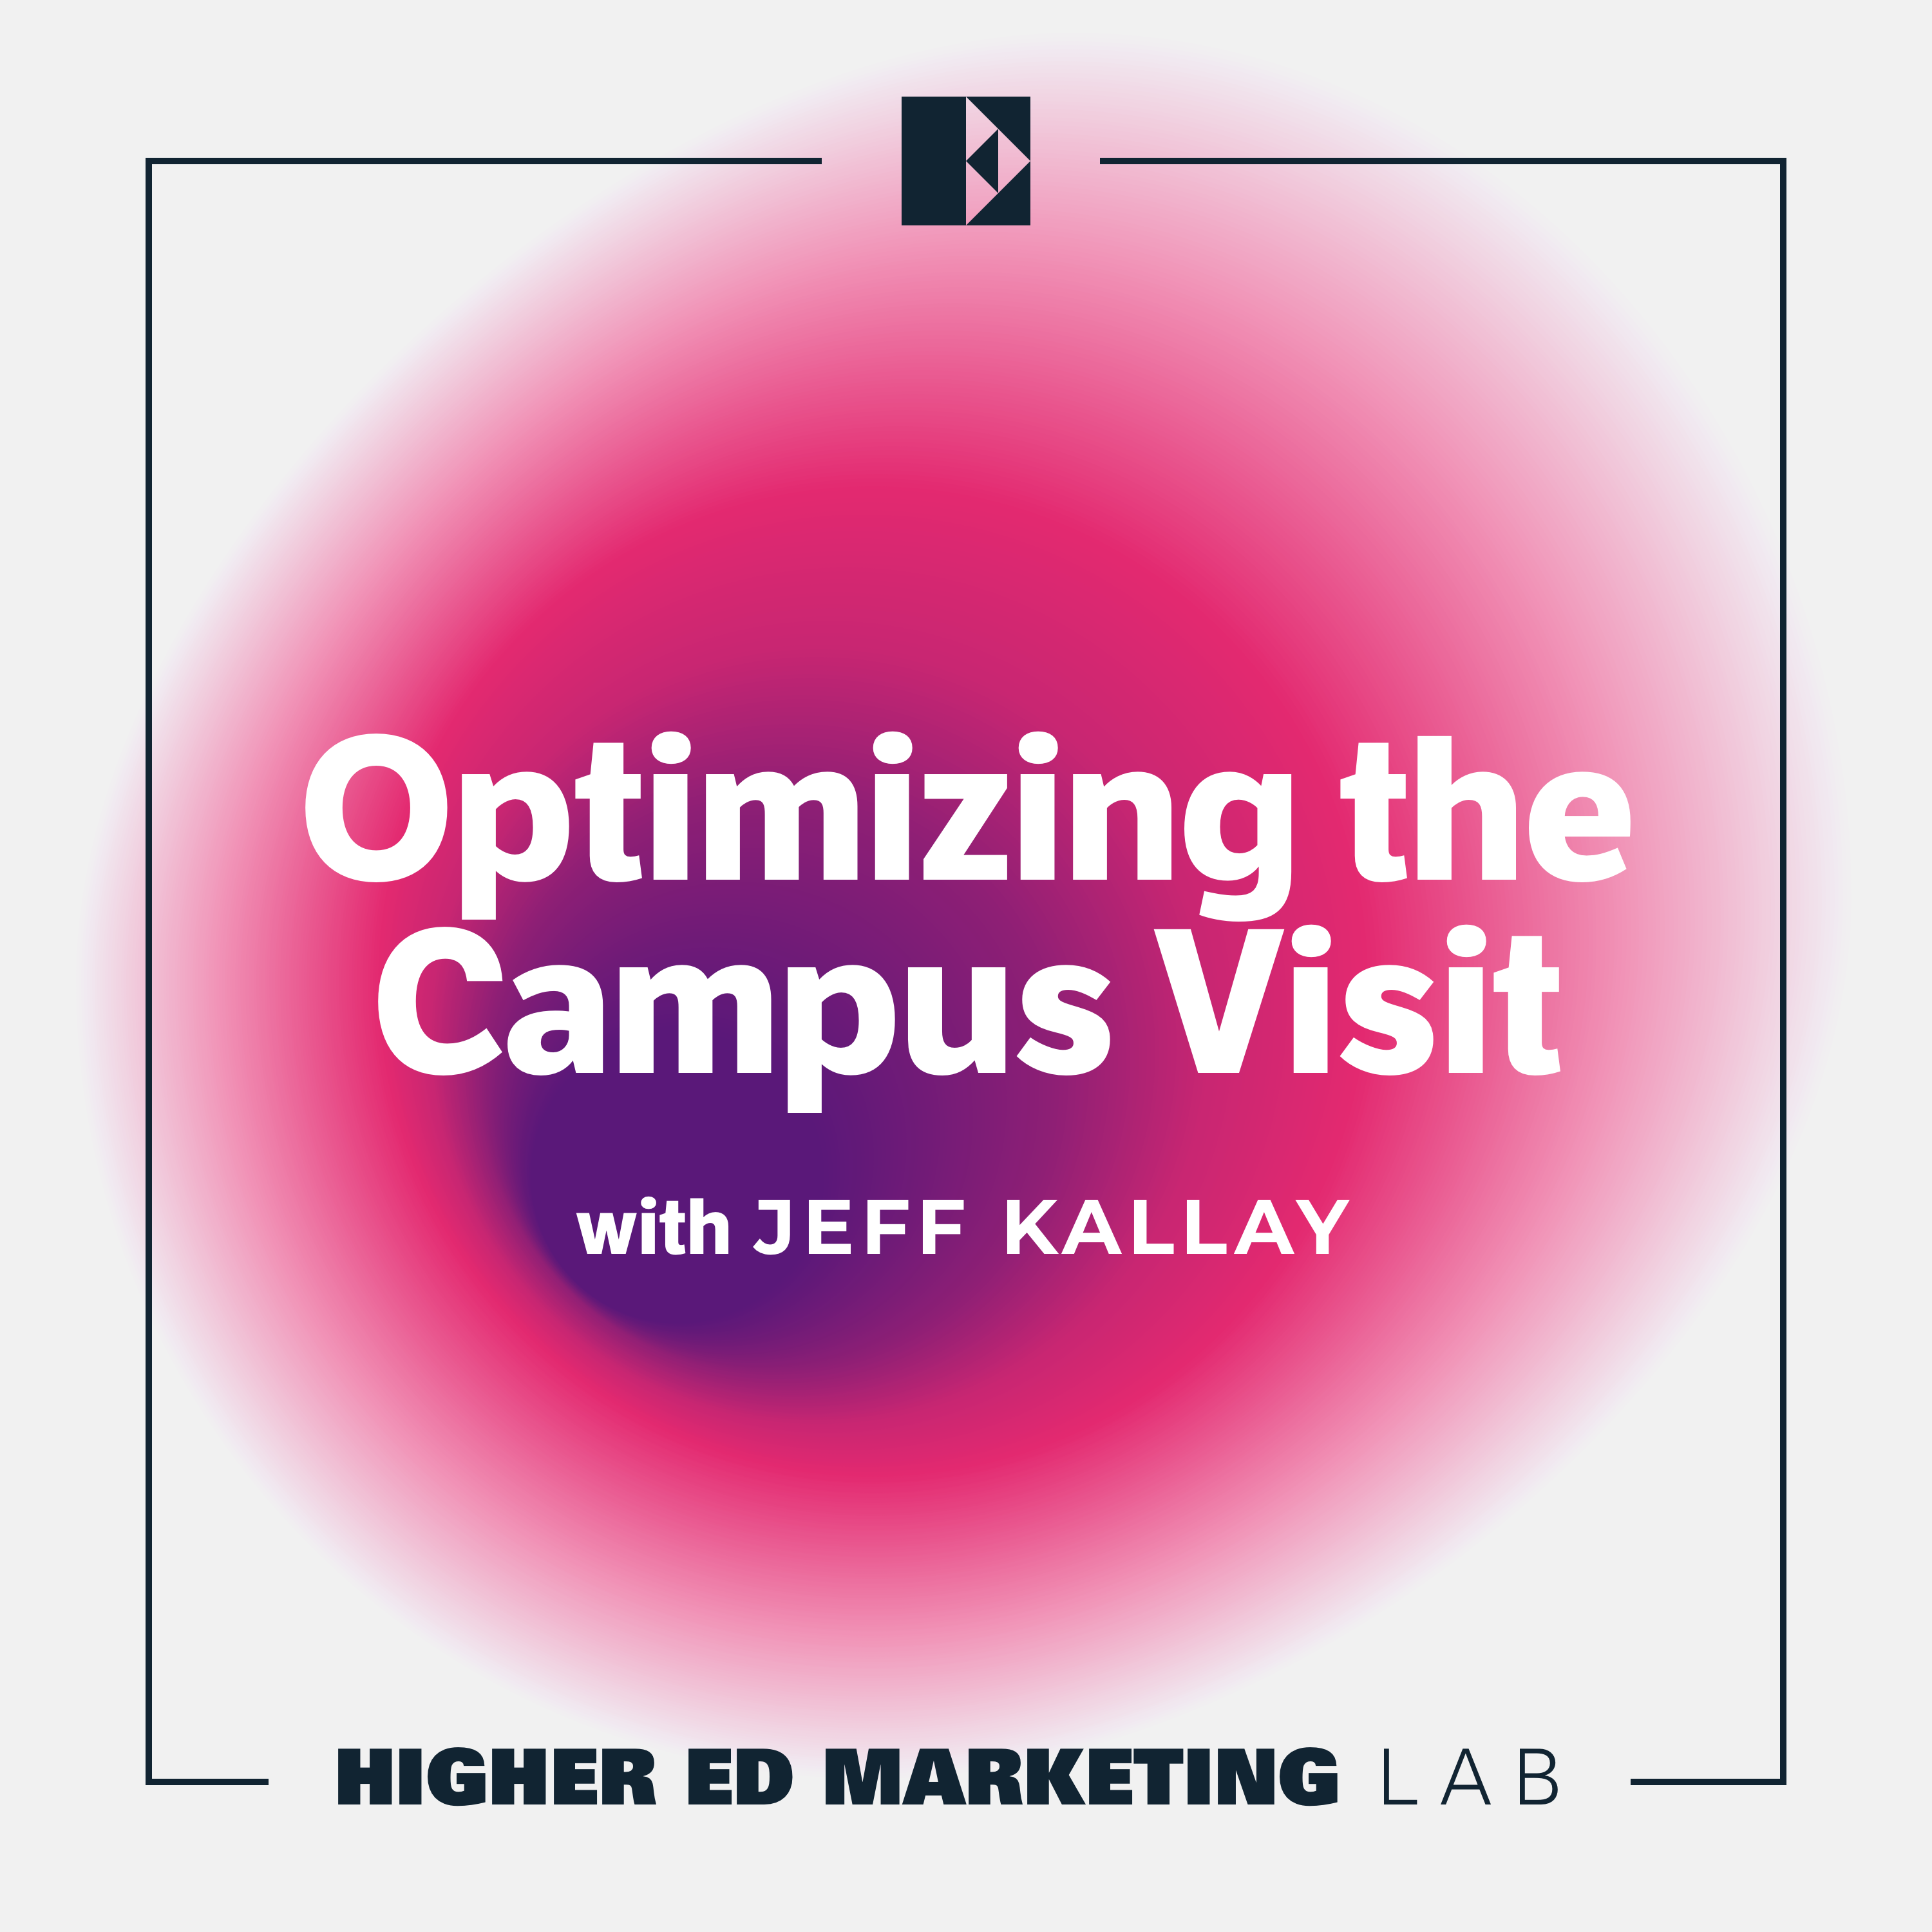 Optimizing The Campus Visit Experience With Jeff Kallay Echo Delta